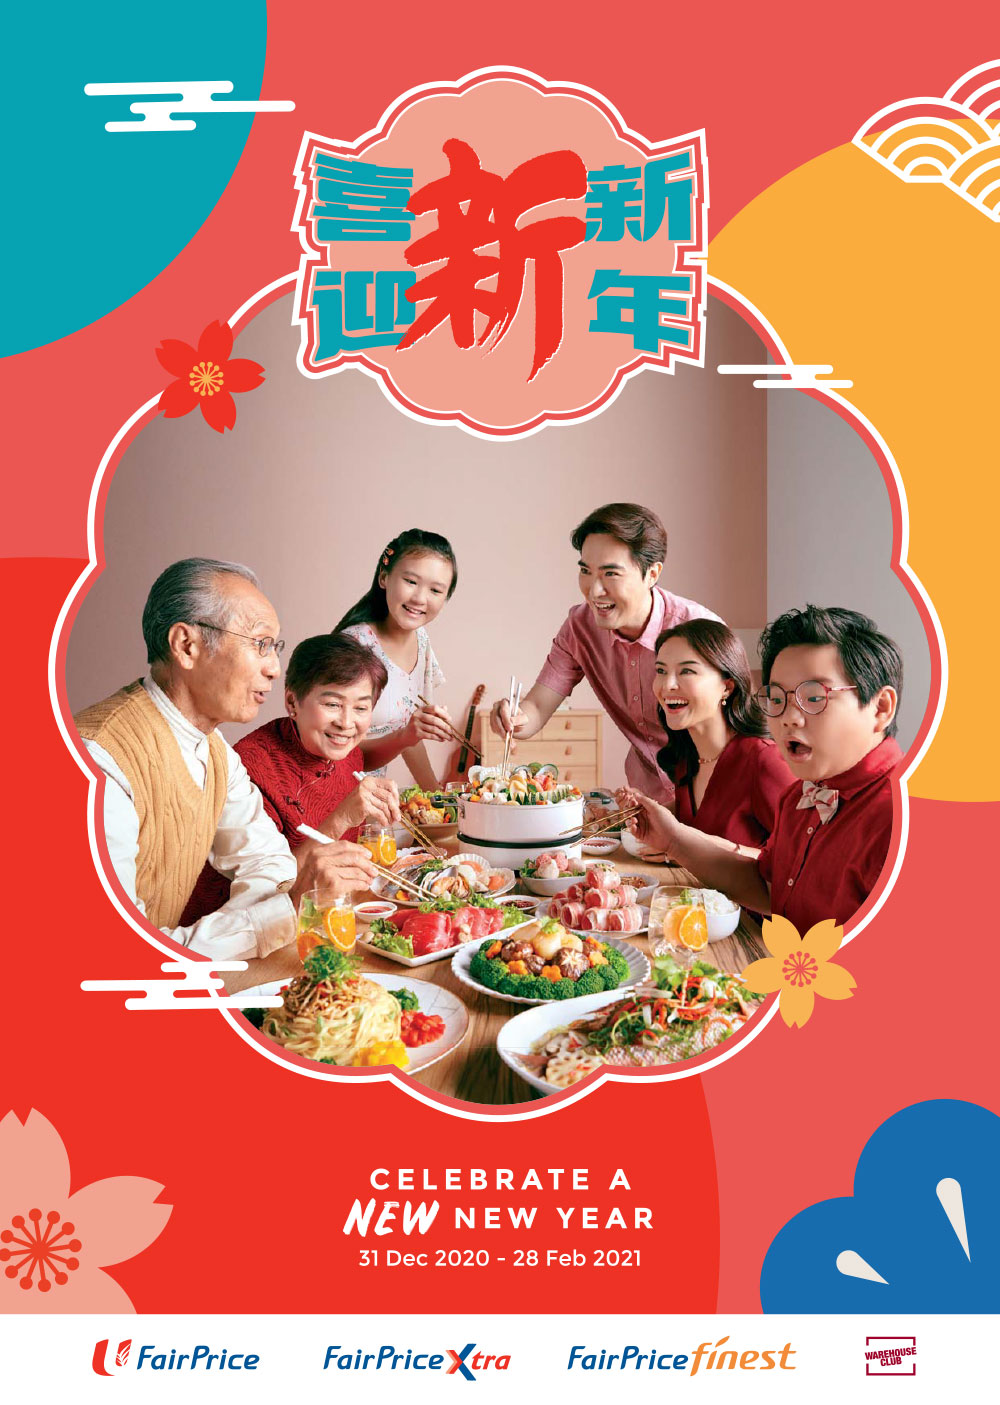 FairPrice Chinese New Year Catalogue 2021 - Celebrate a New New Year